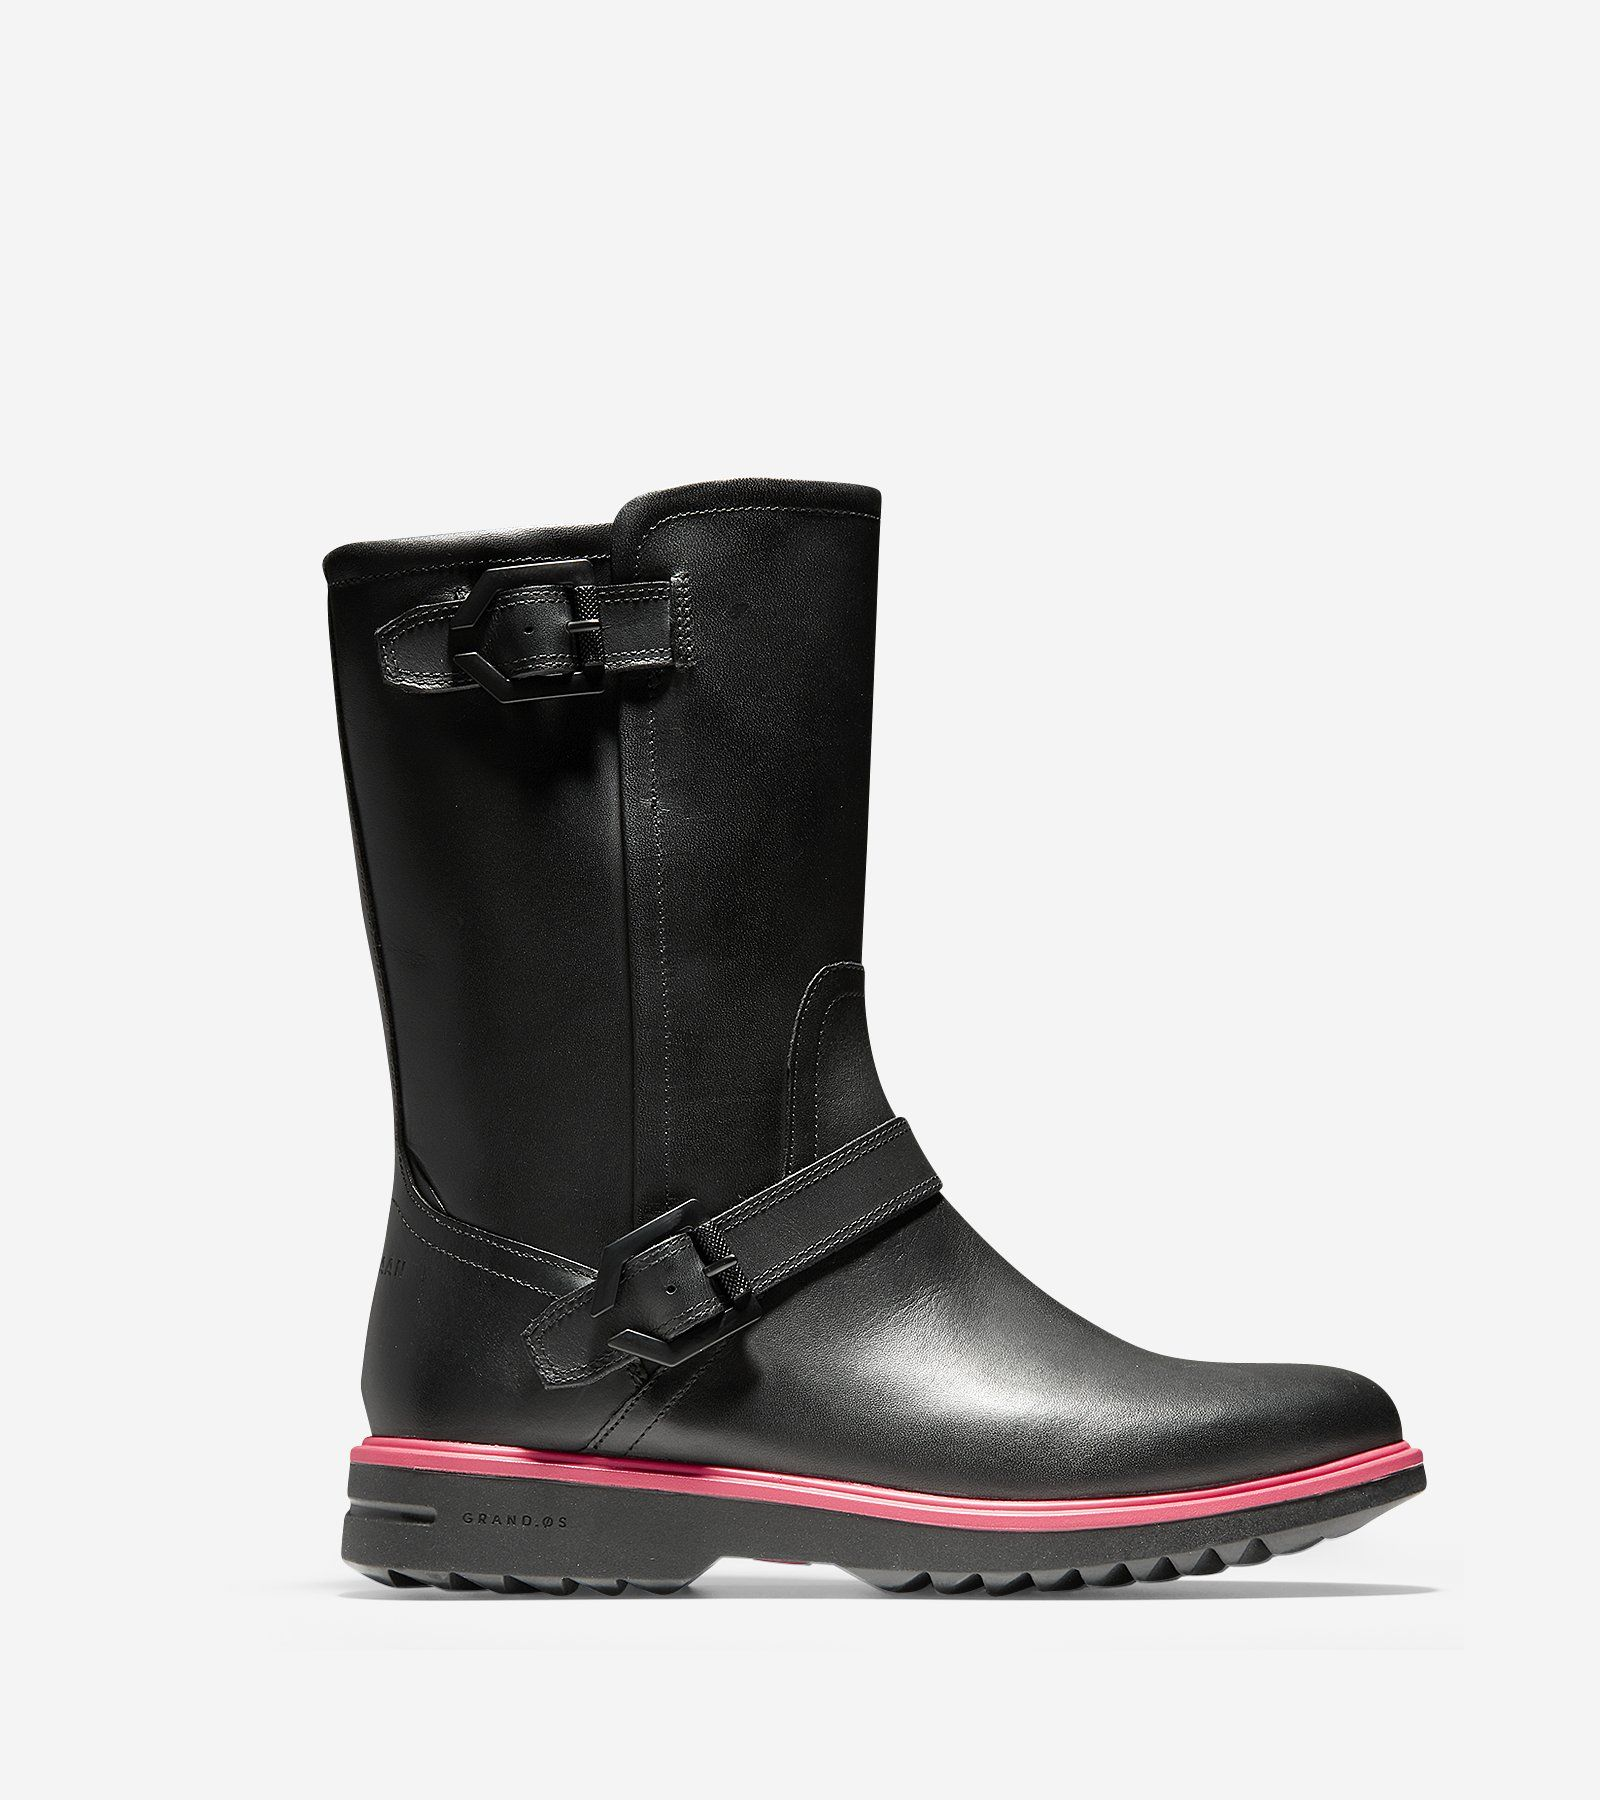 Women's Millbridge Waterproof Moto Boots in Black | Cole Haan